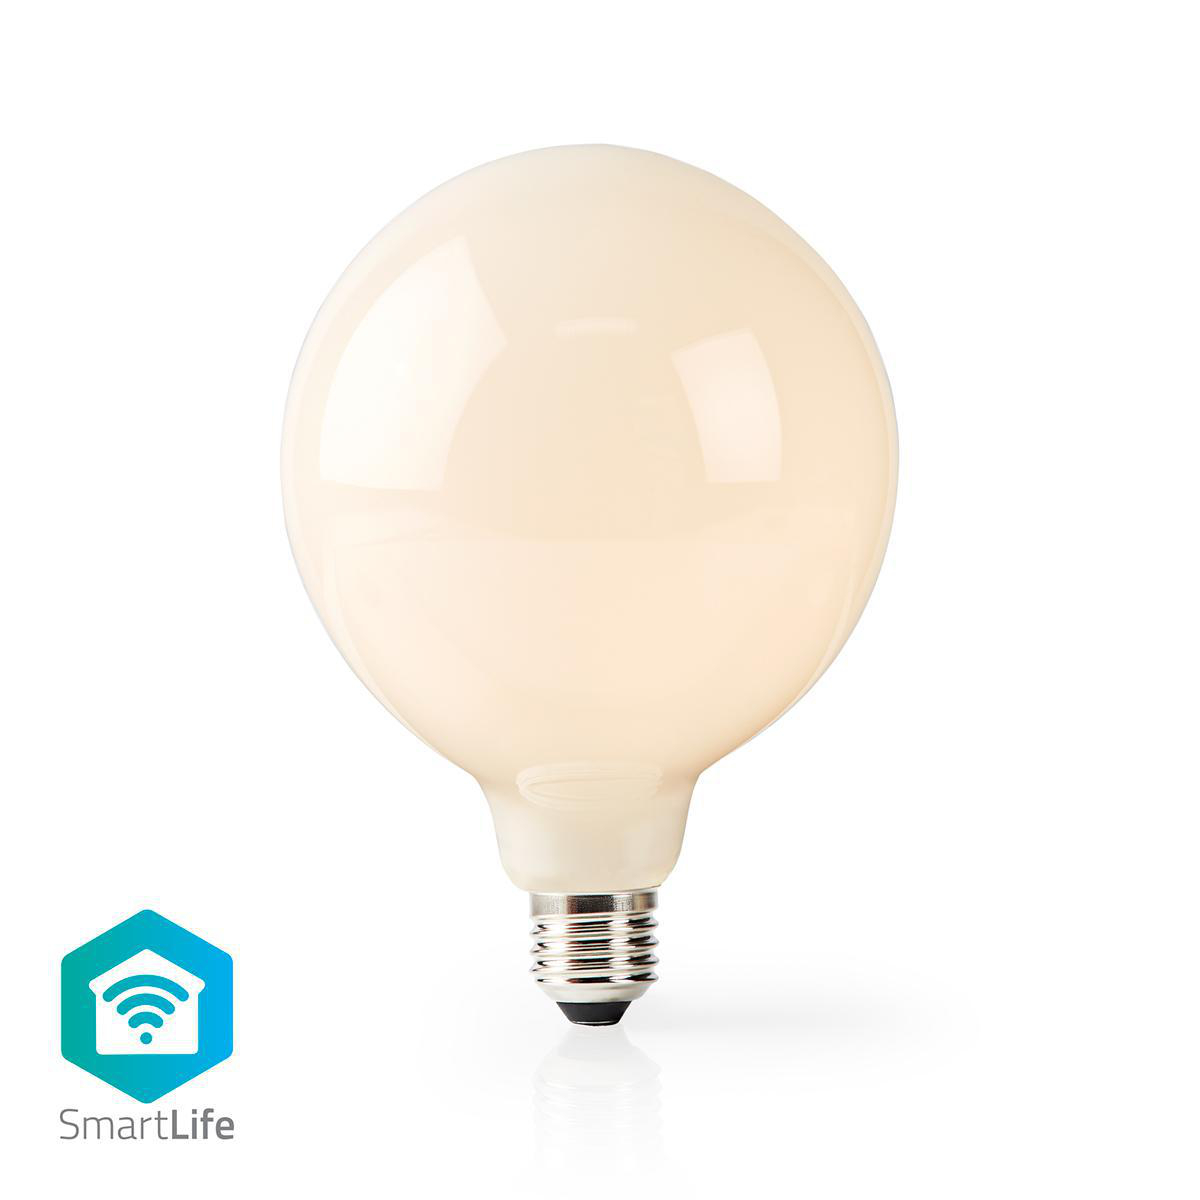 Smart lamp globe Led Lamp 5 Watt 2700K - Warm wit - vooraanzicht lamp